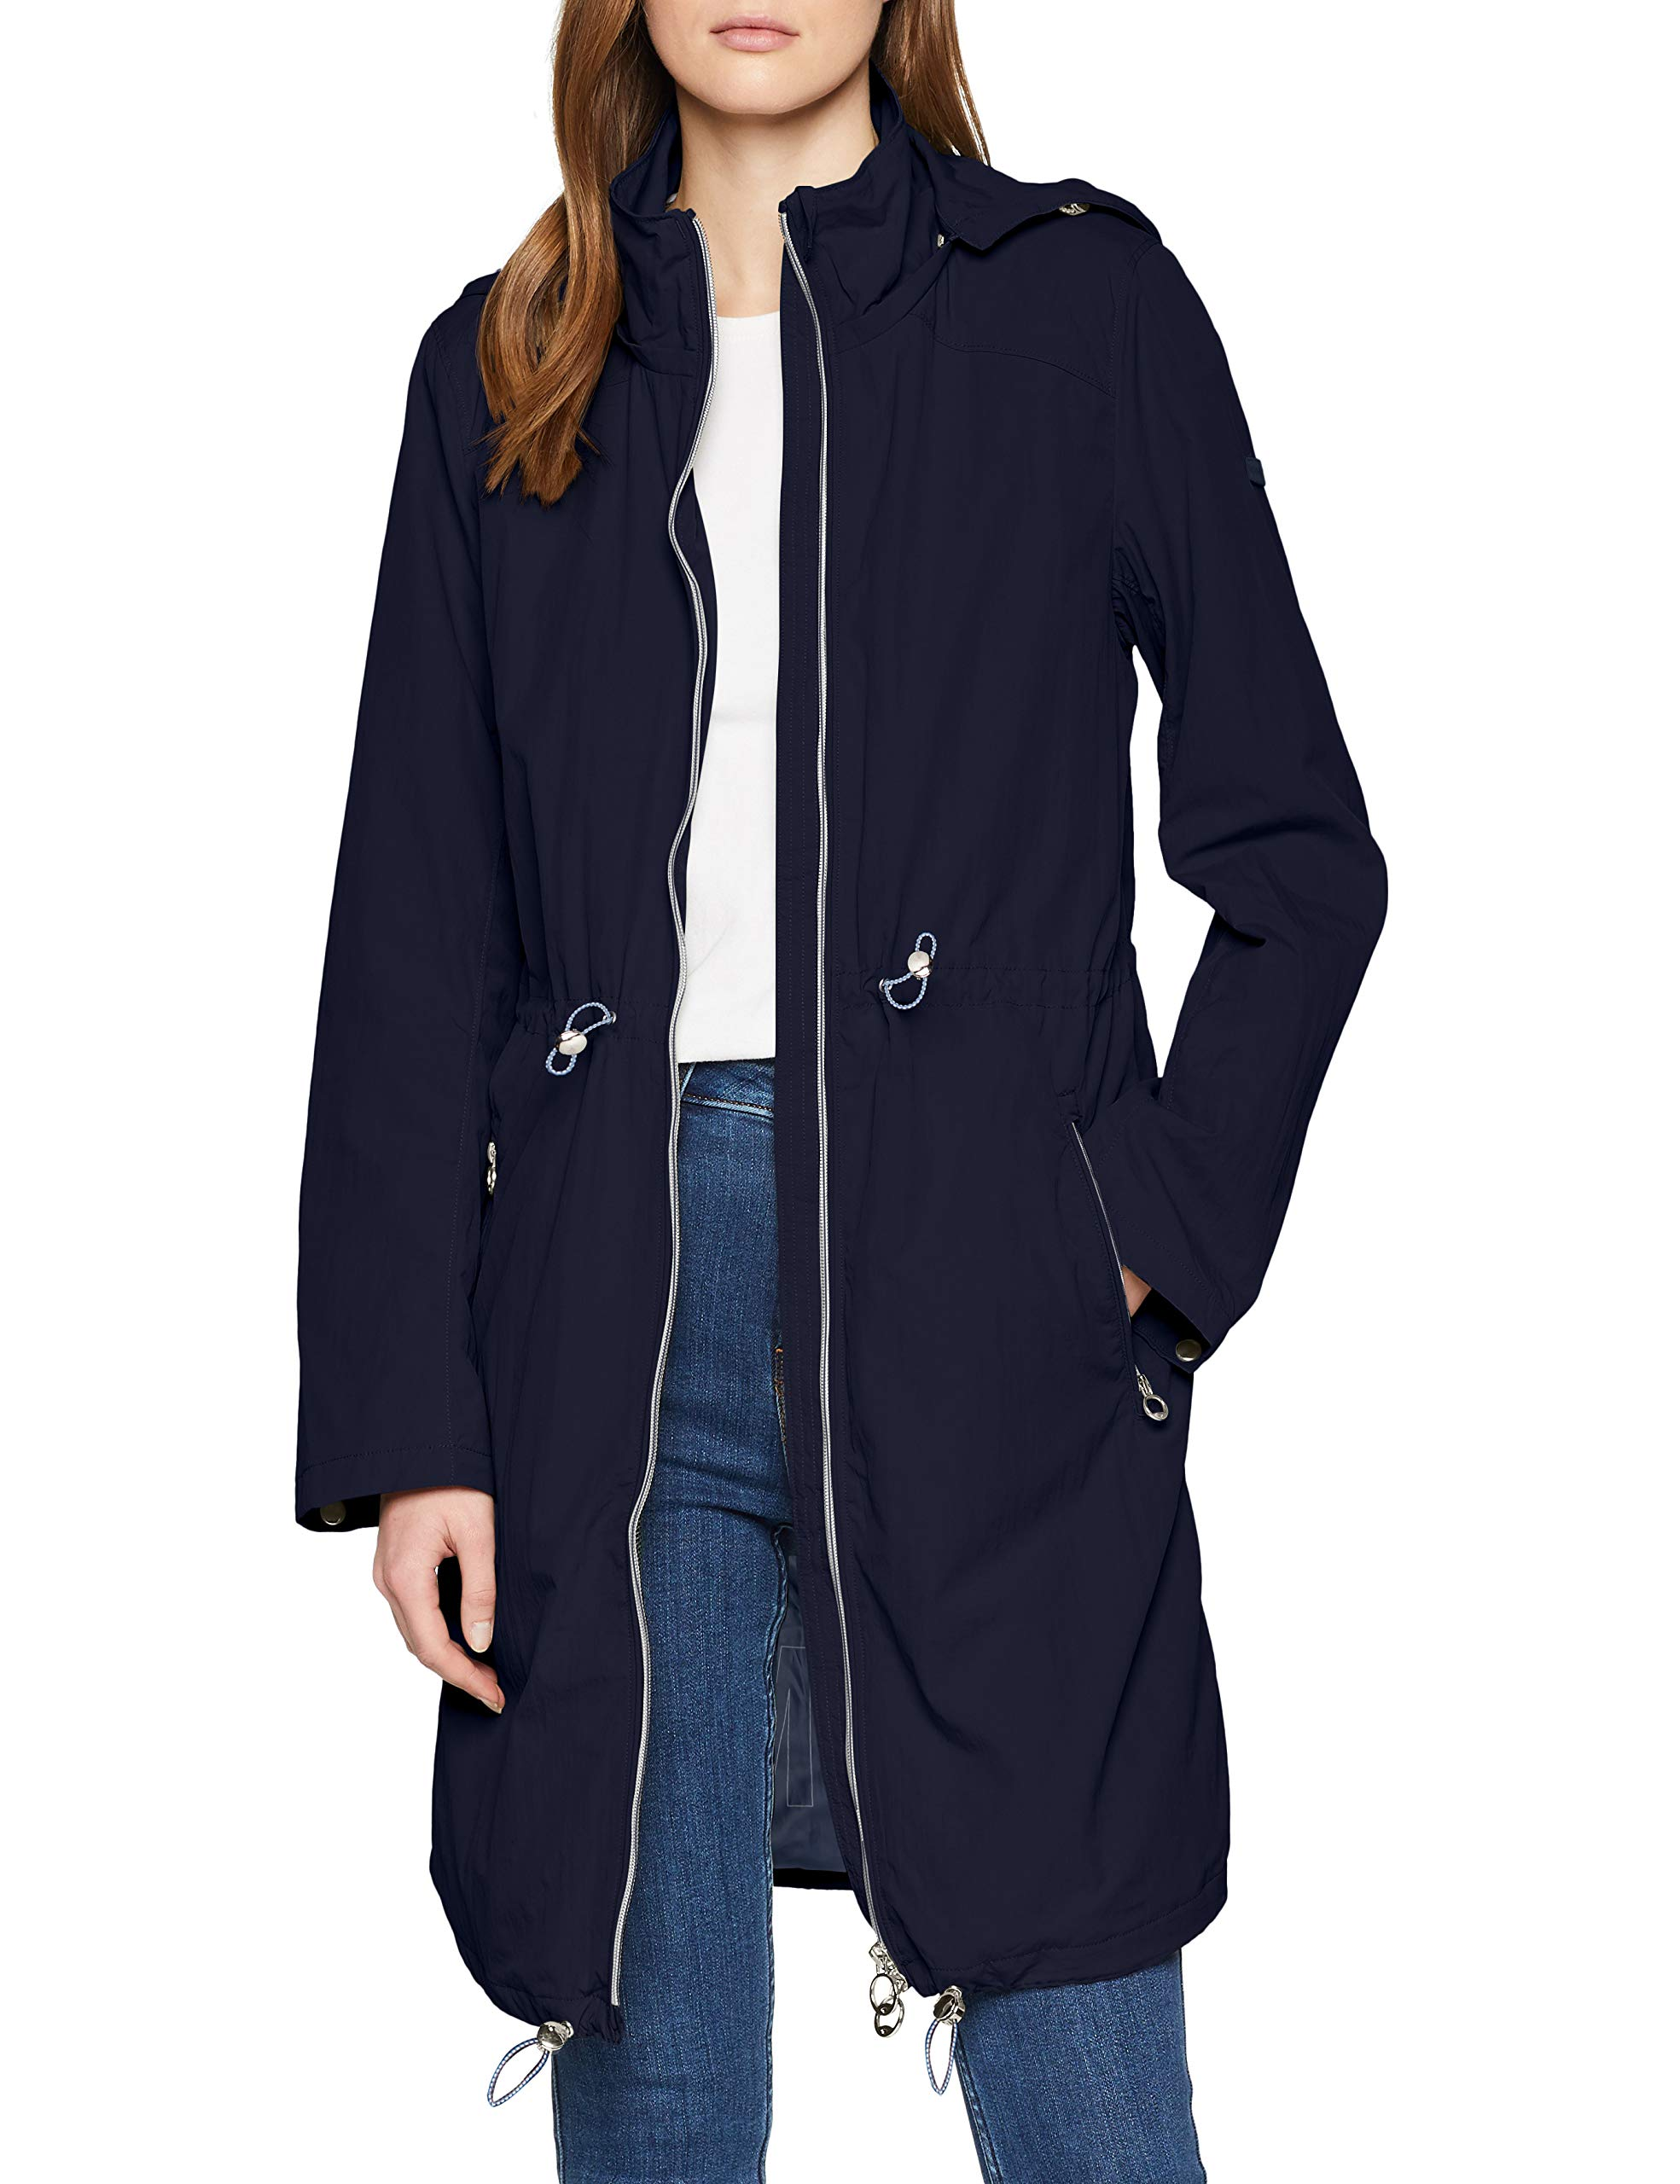 1007976 10668X BlousonBleusky Blue Captain Femme large Tailor Tom Casual OkP0nw